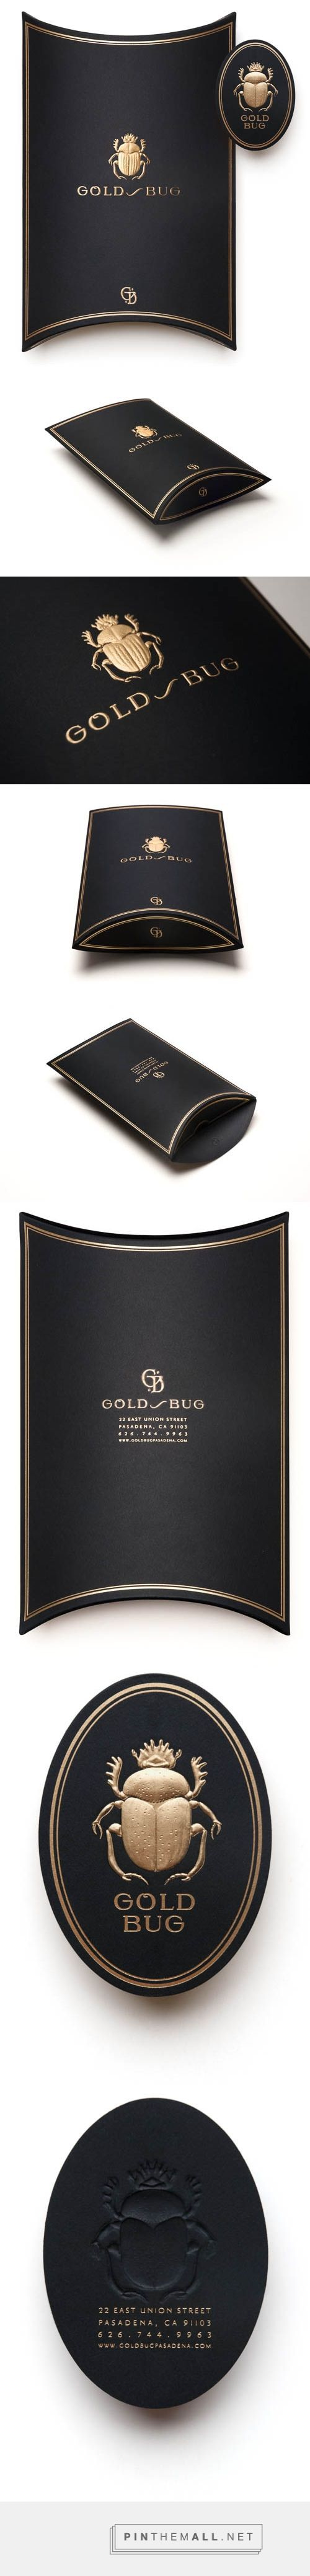 Pressure printing Gold Bug identity design. Look how gorgeous this embossed/debossed #packaging is curated by Packaging Diva PD created via http://blog.pressureprinting.com/post/68906012107/gold-bug-identity-design: